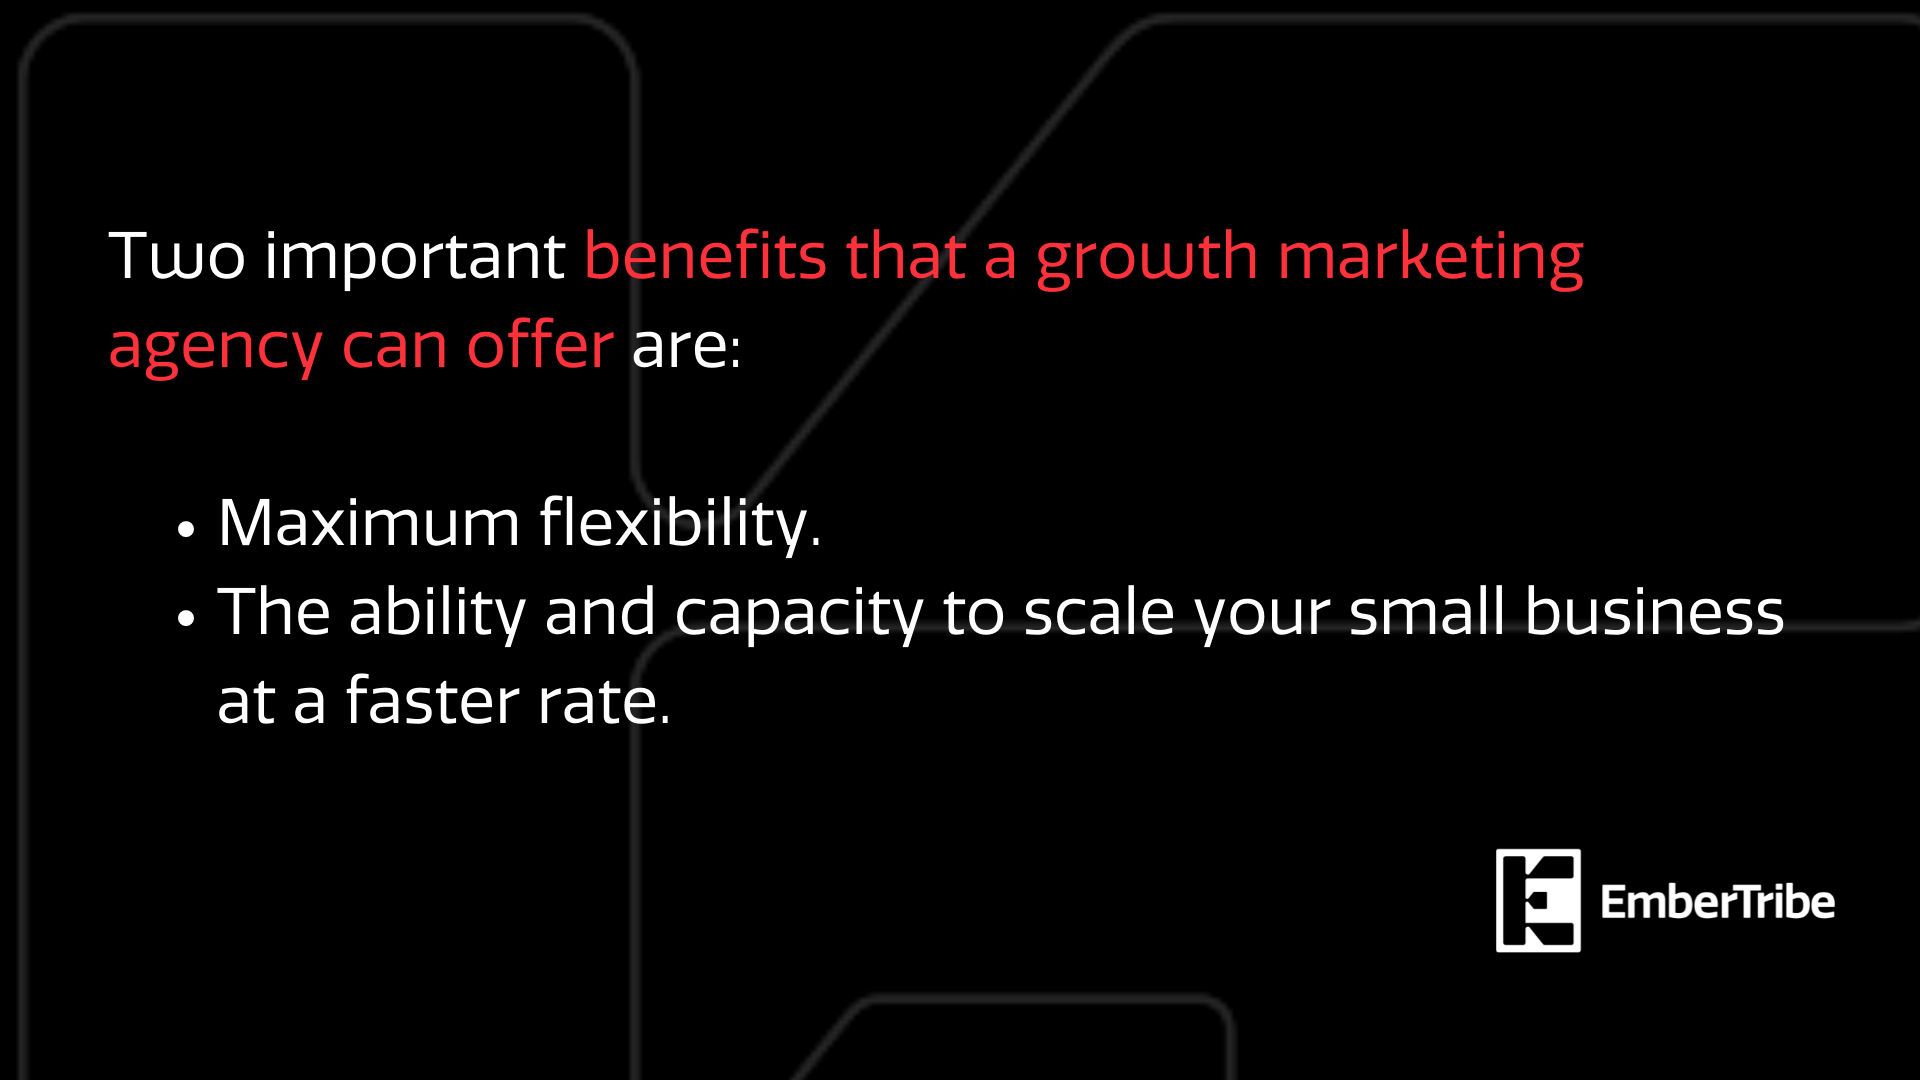 What growth marketing agencies can offer